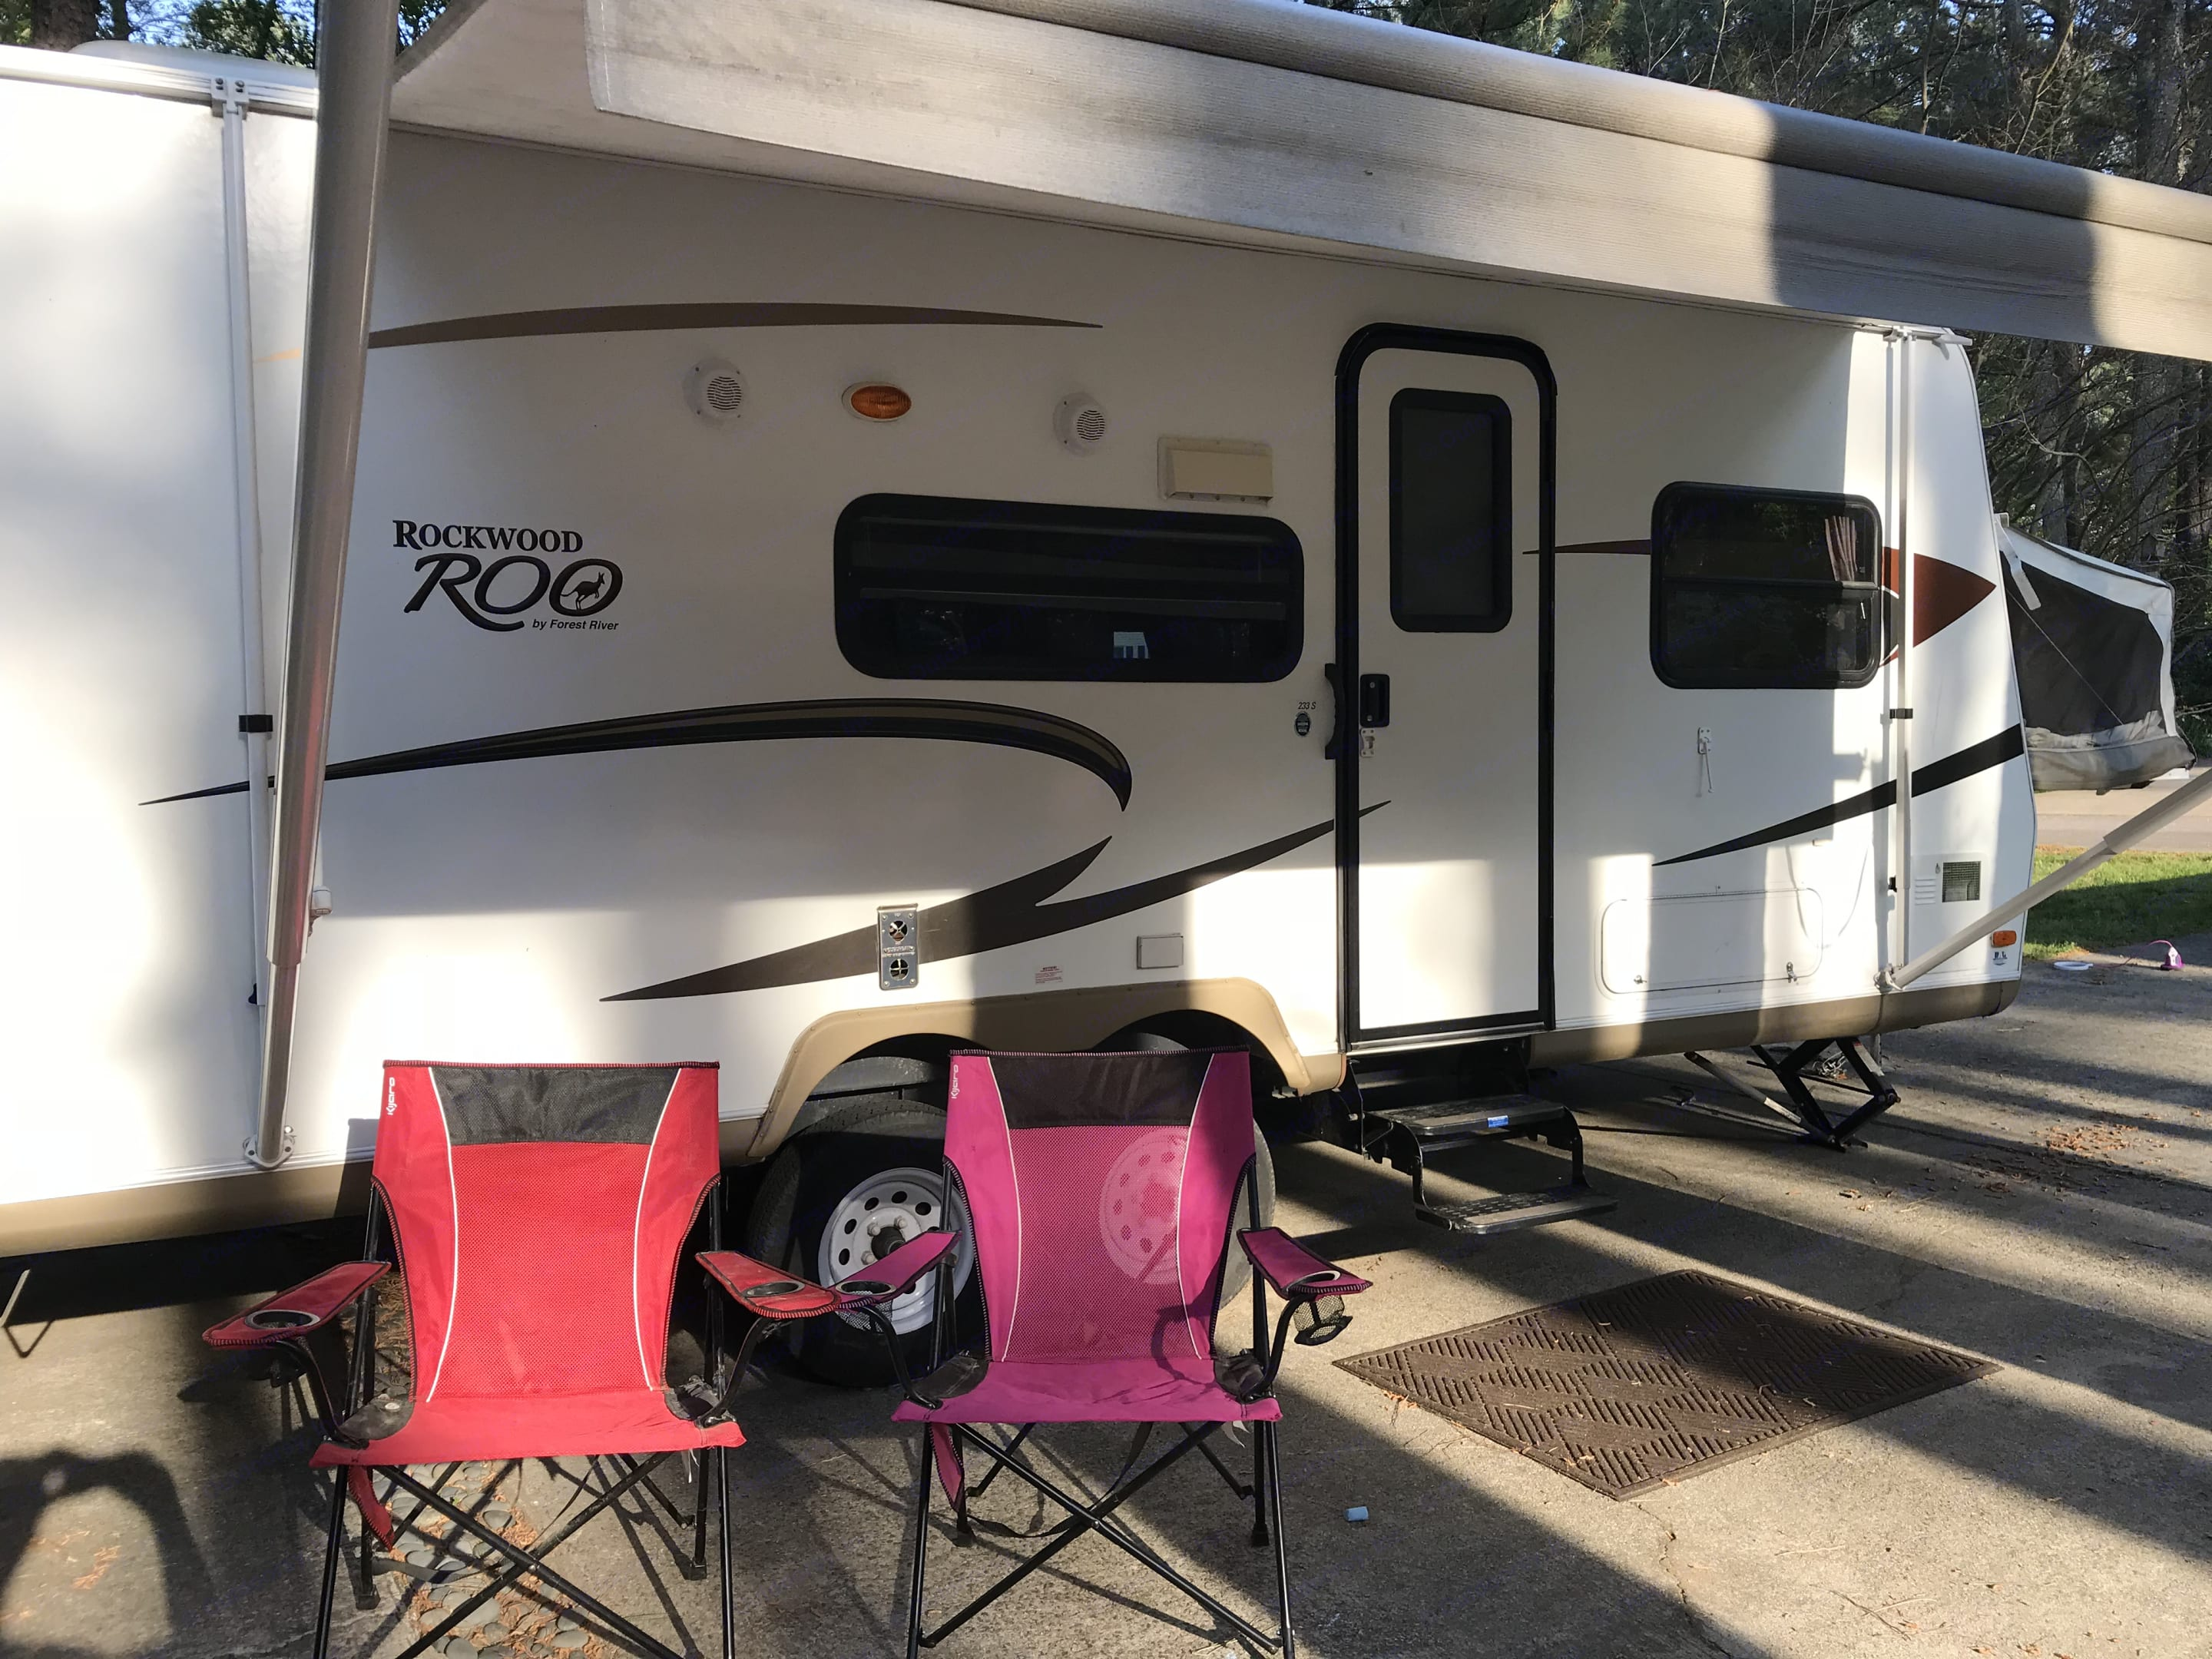 Welcome to your home base for your next adventure! We aim to make your rental experience as fun, easy, and simple as possible. Many camping basics are included in our rental - like his and her camping chairs as well as three kid-sized camping chairs.. Forest River Rockwood Roo 2011